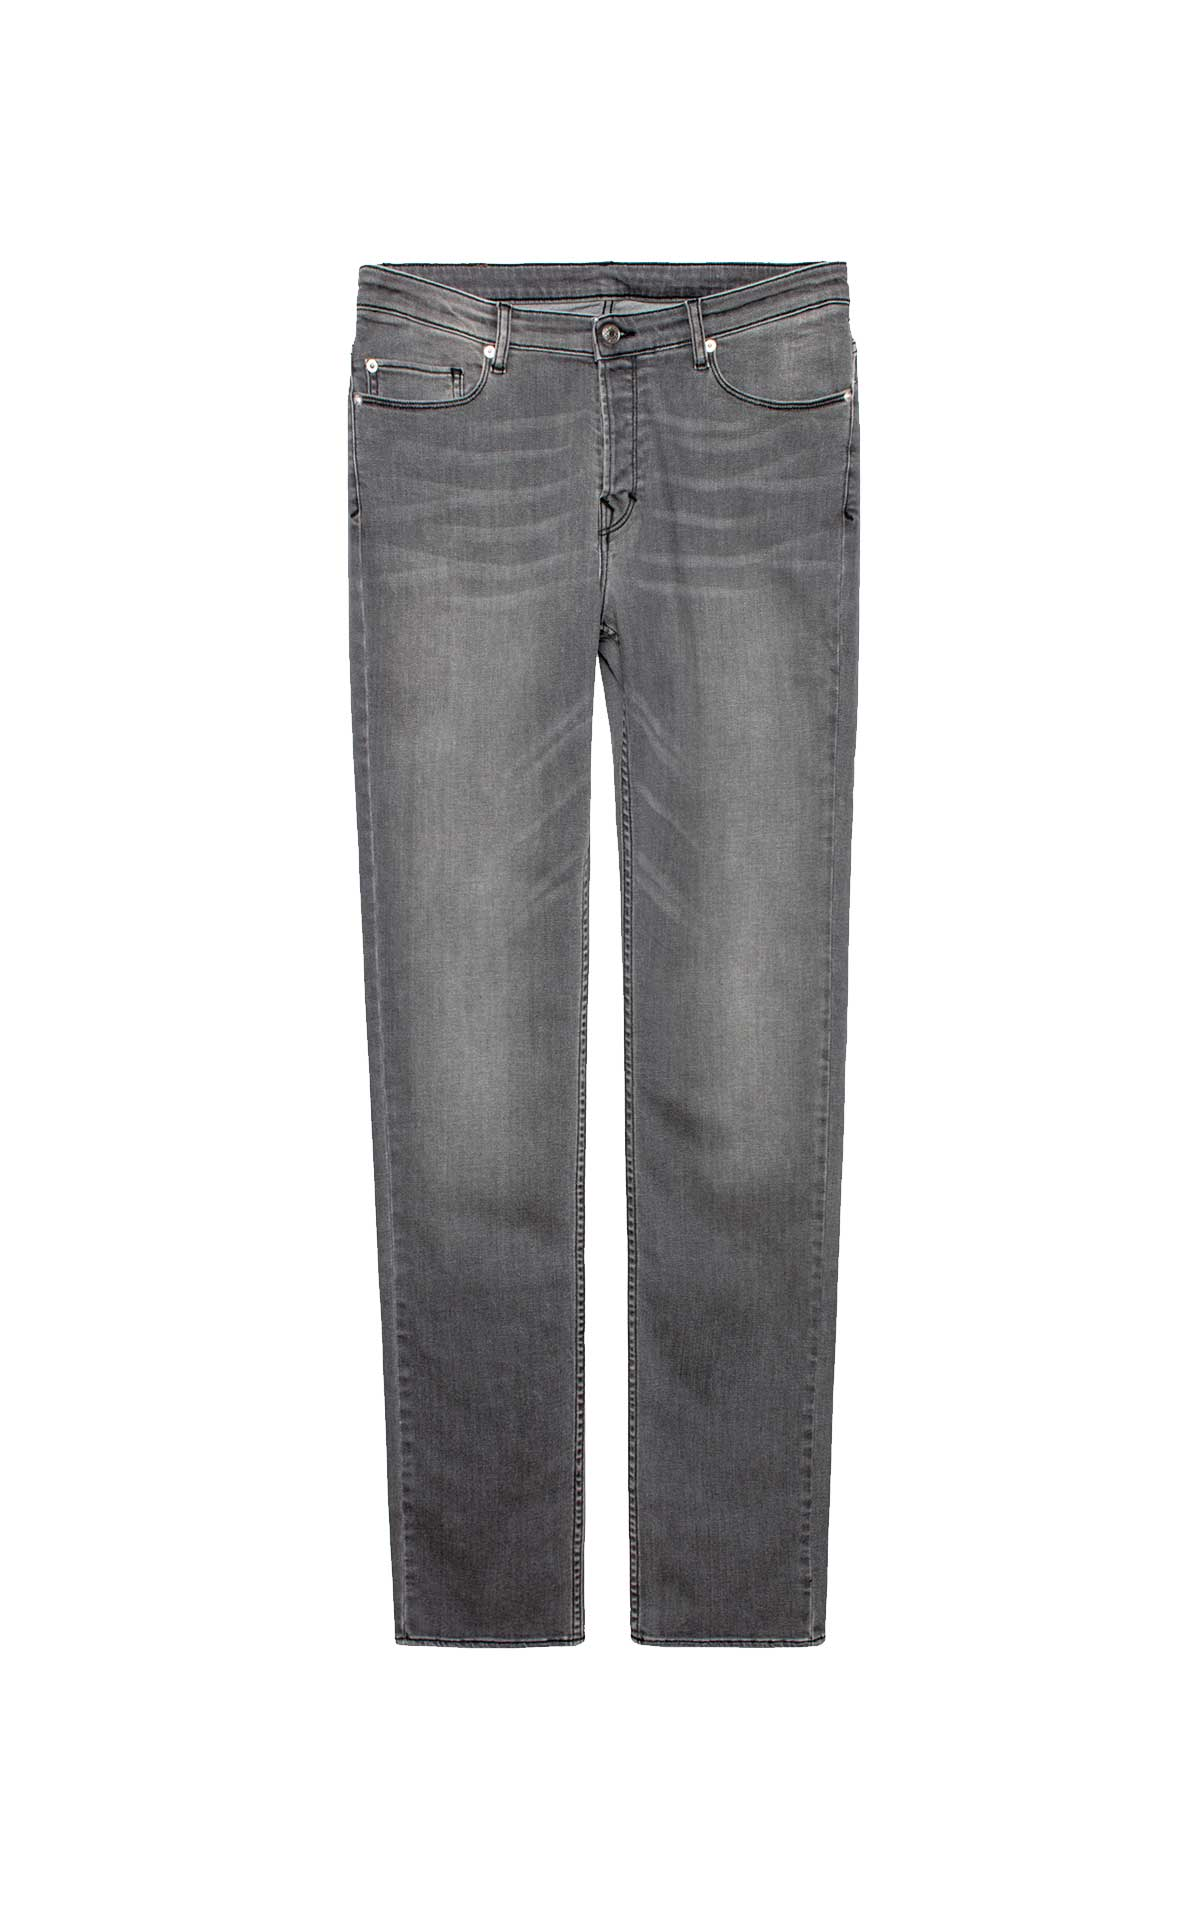 Grey denim jeans Zadig&Voltaire